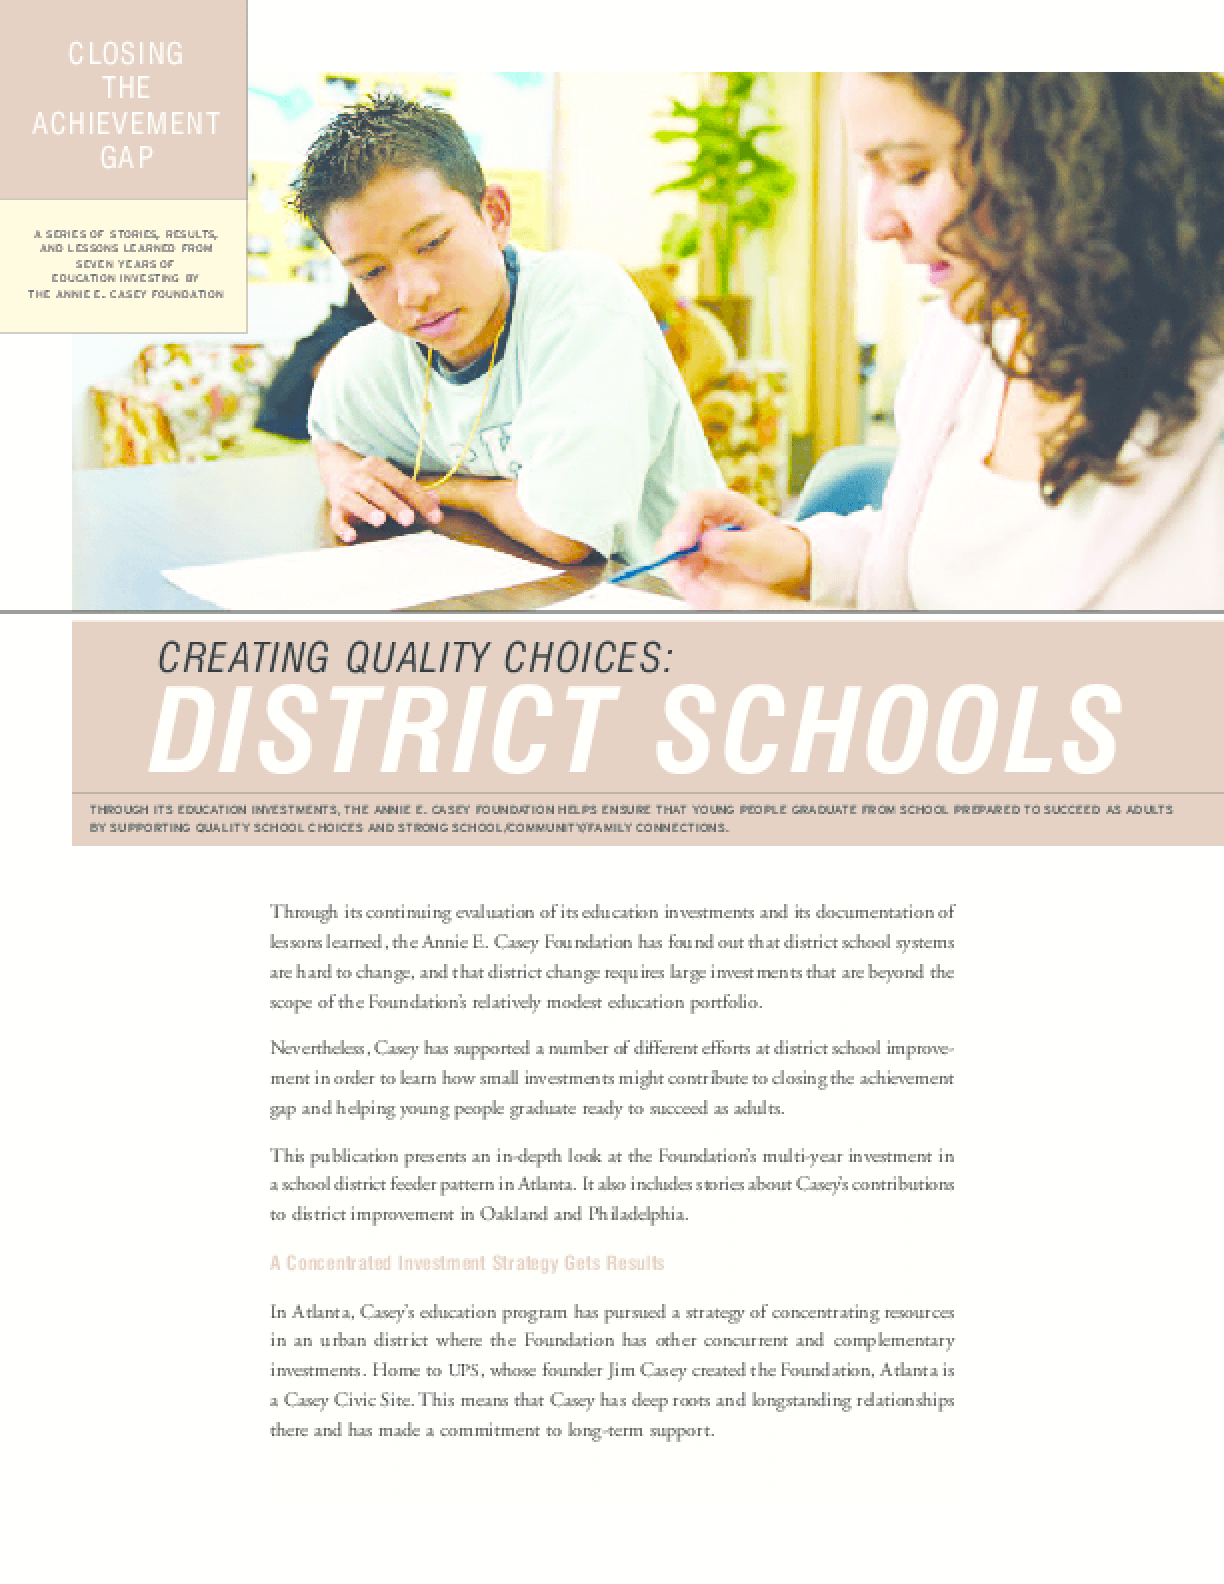 Closing the Achievement Gap: Creating Quality Choices: District Schools